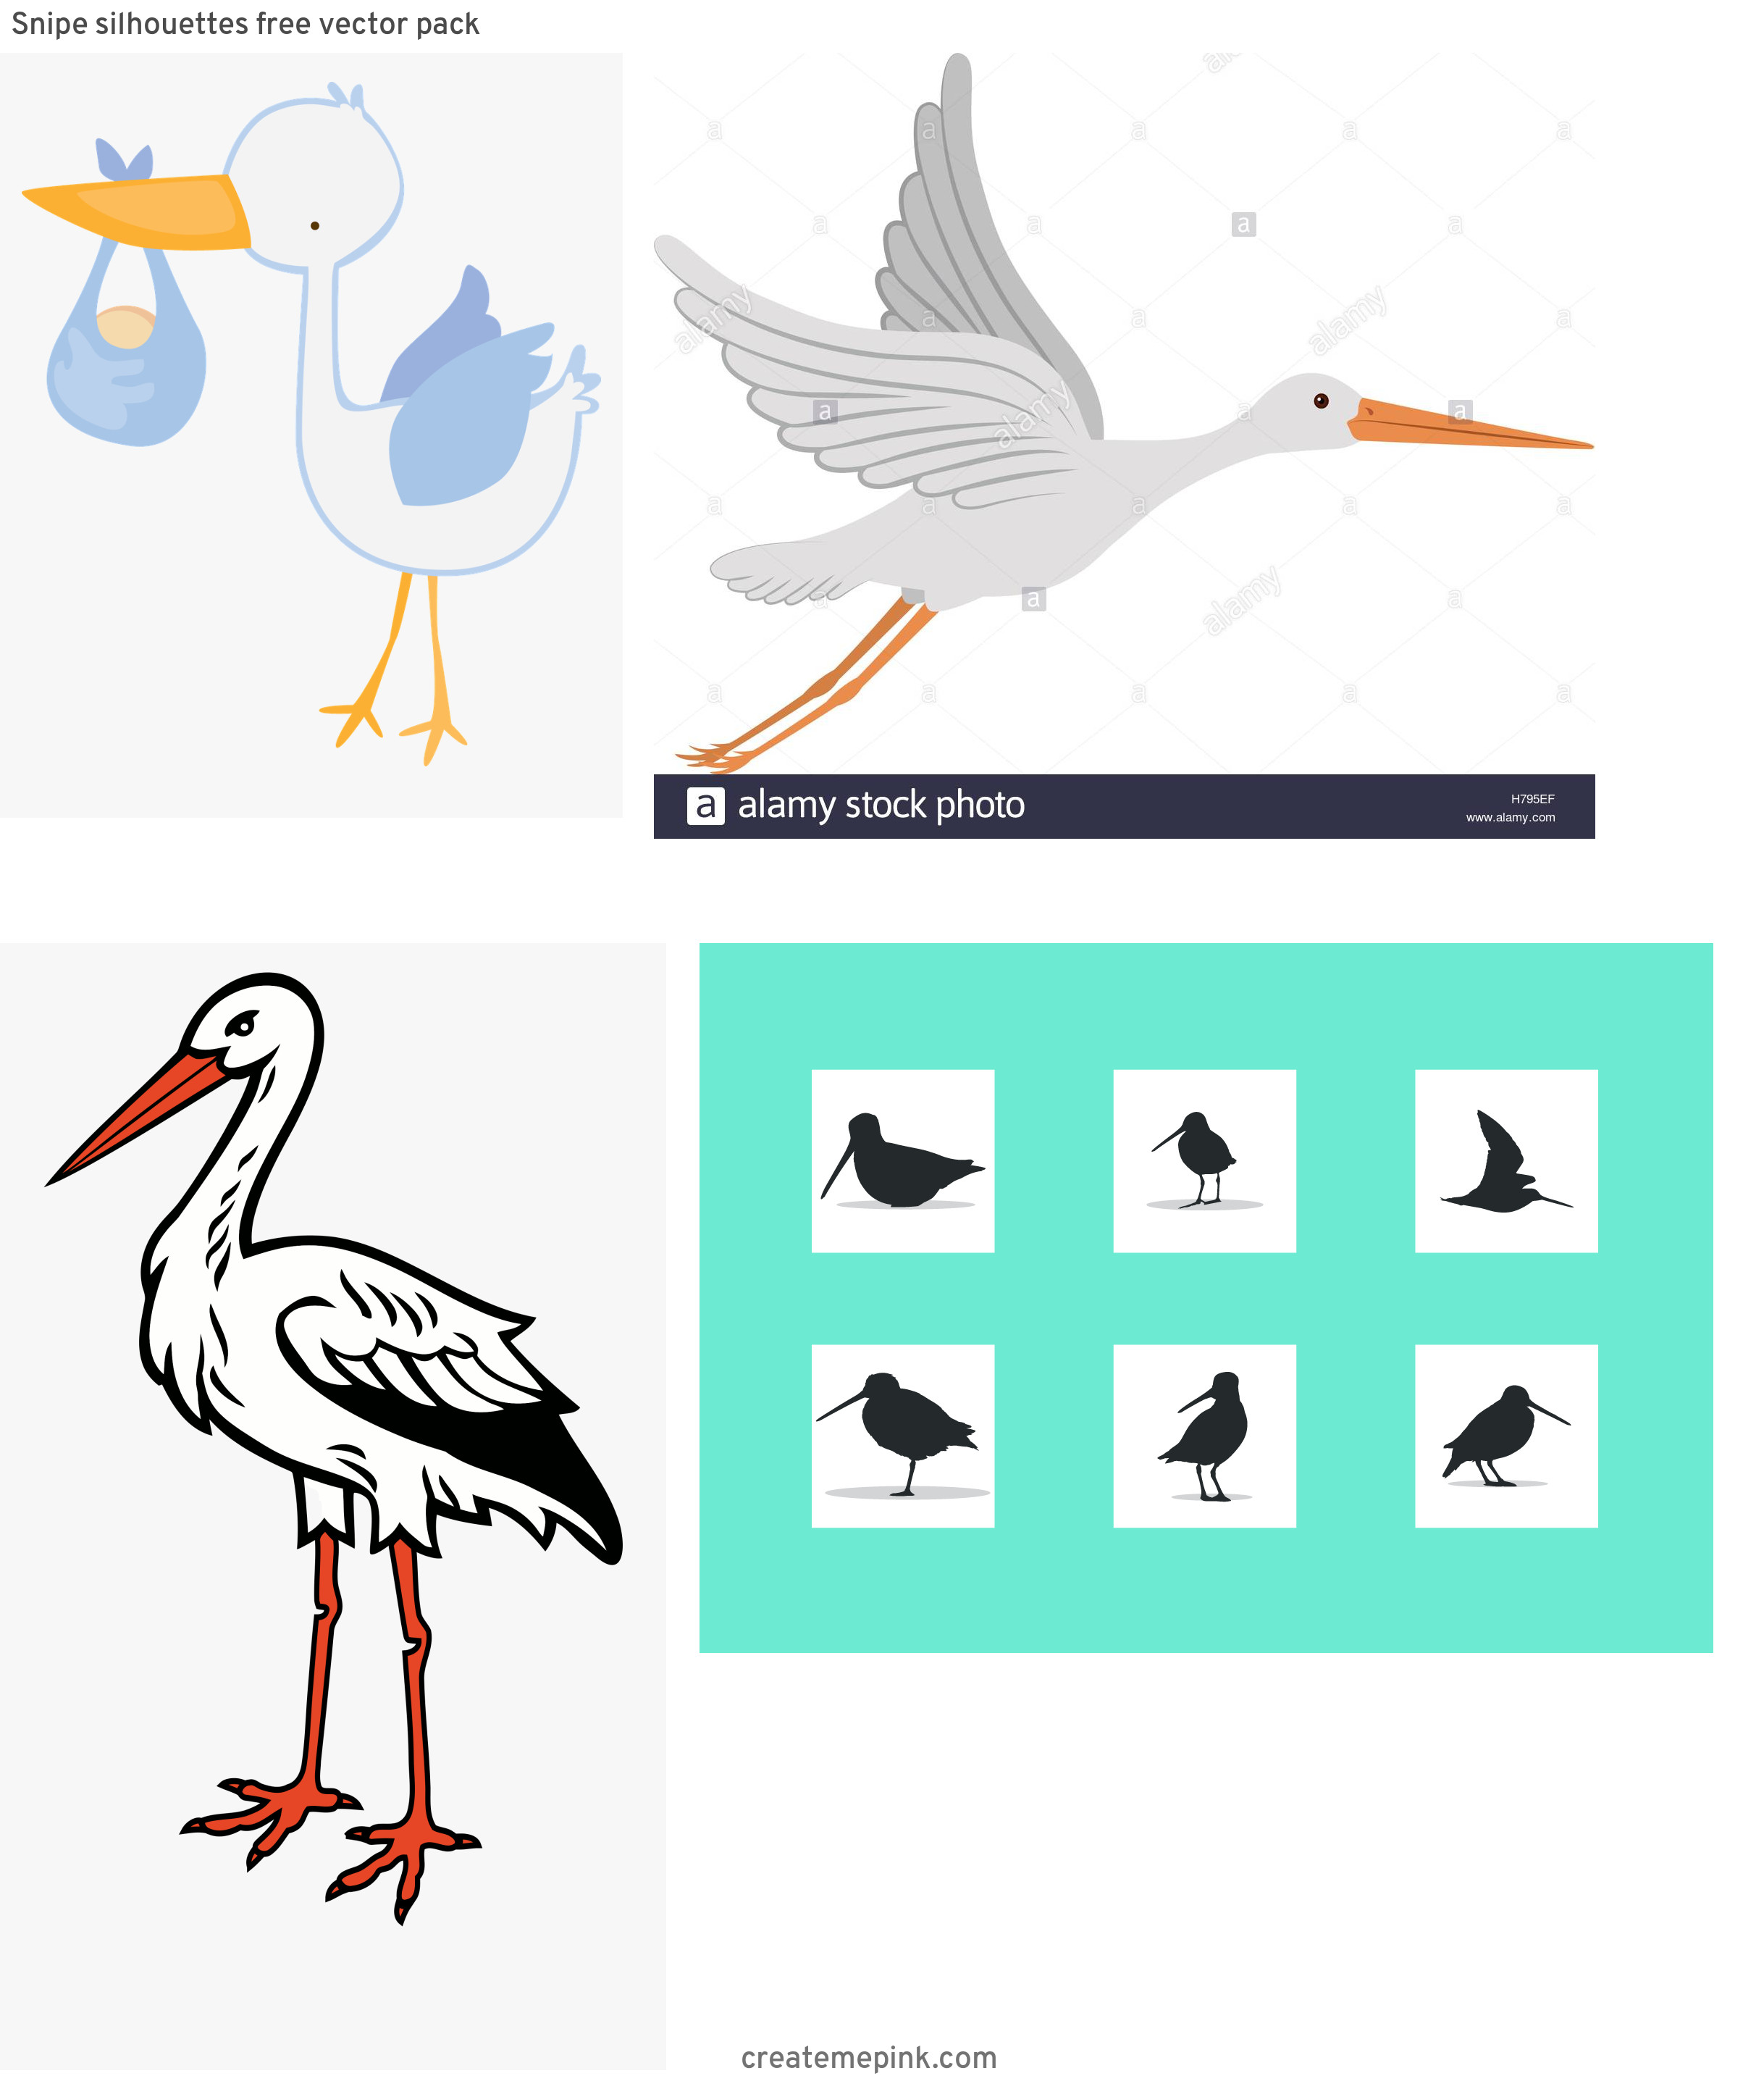 Cartoon Stork Vector Silhouette: Snipe Silhouettes Free Vector Pack